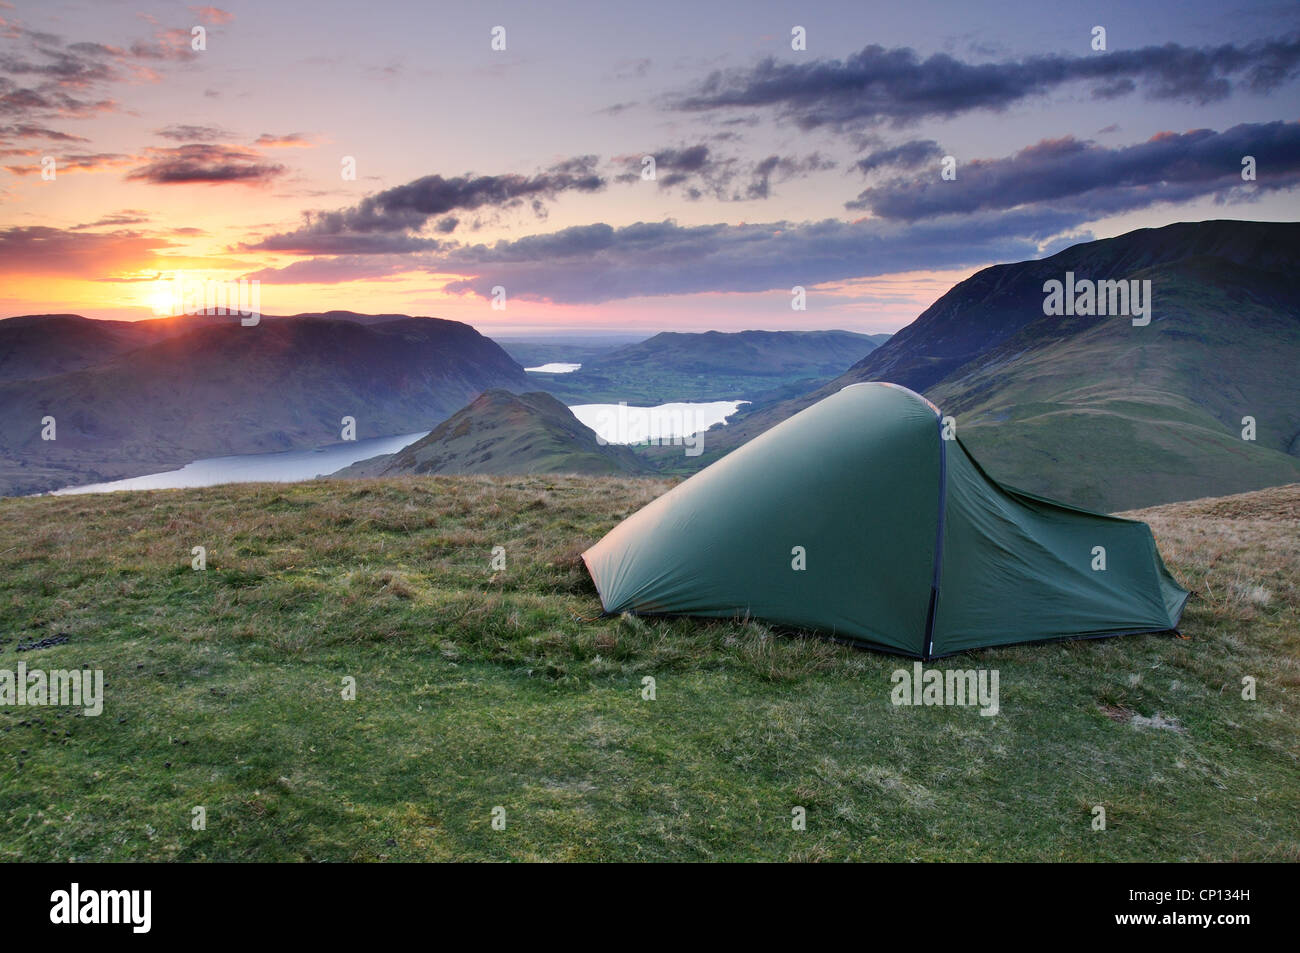 Wild Camping at sunset on High Snockrigg, Robinson, above Buttermere and Crummock Water in the English Lake District - Stock Image